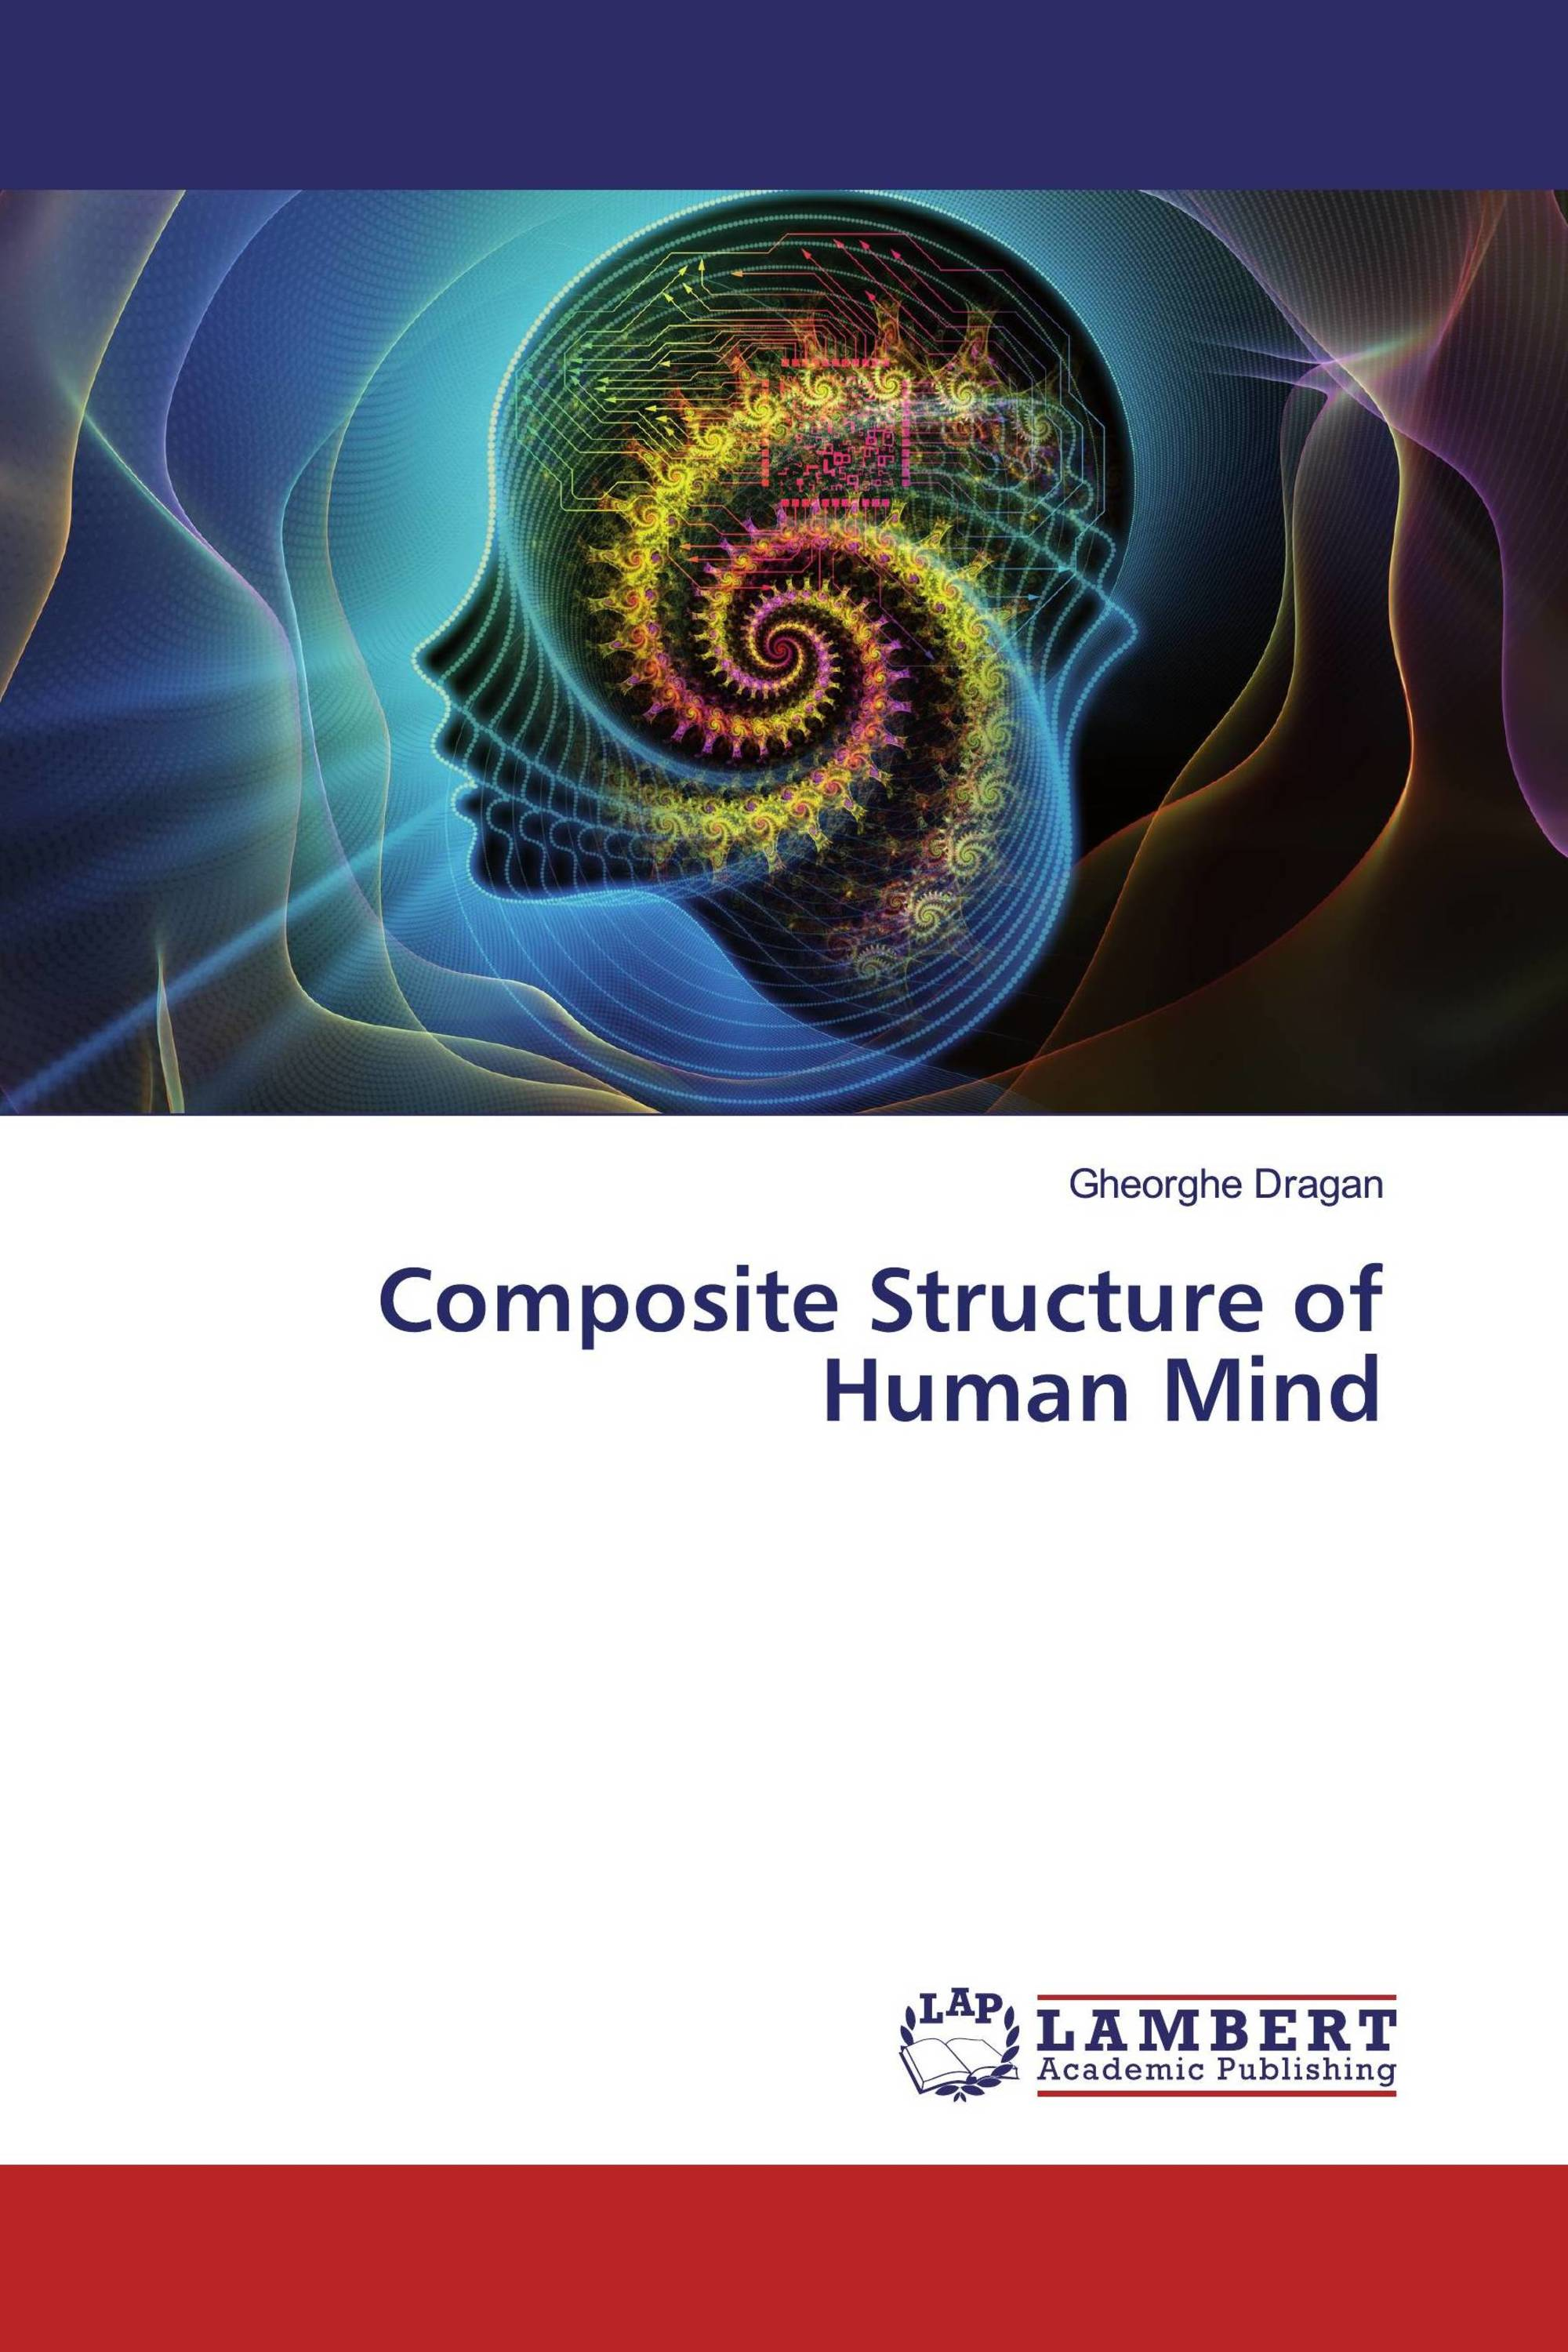 Composite Structure of Human Mind